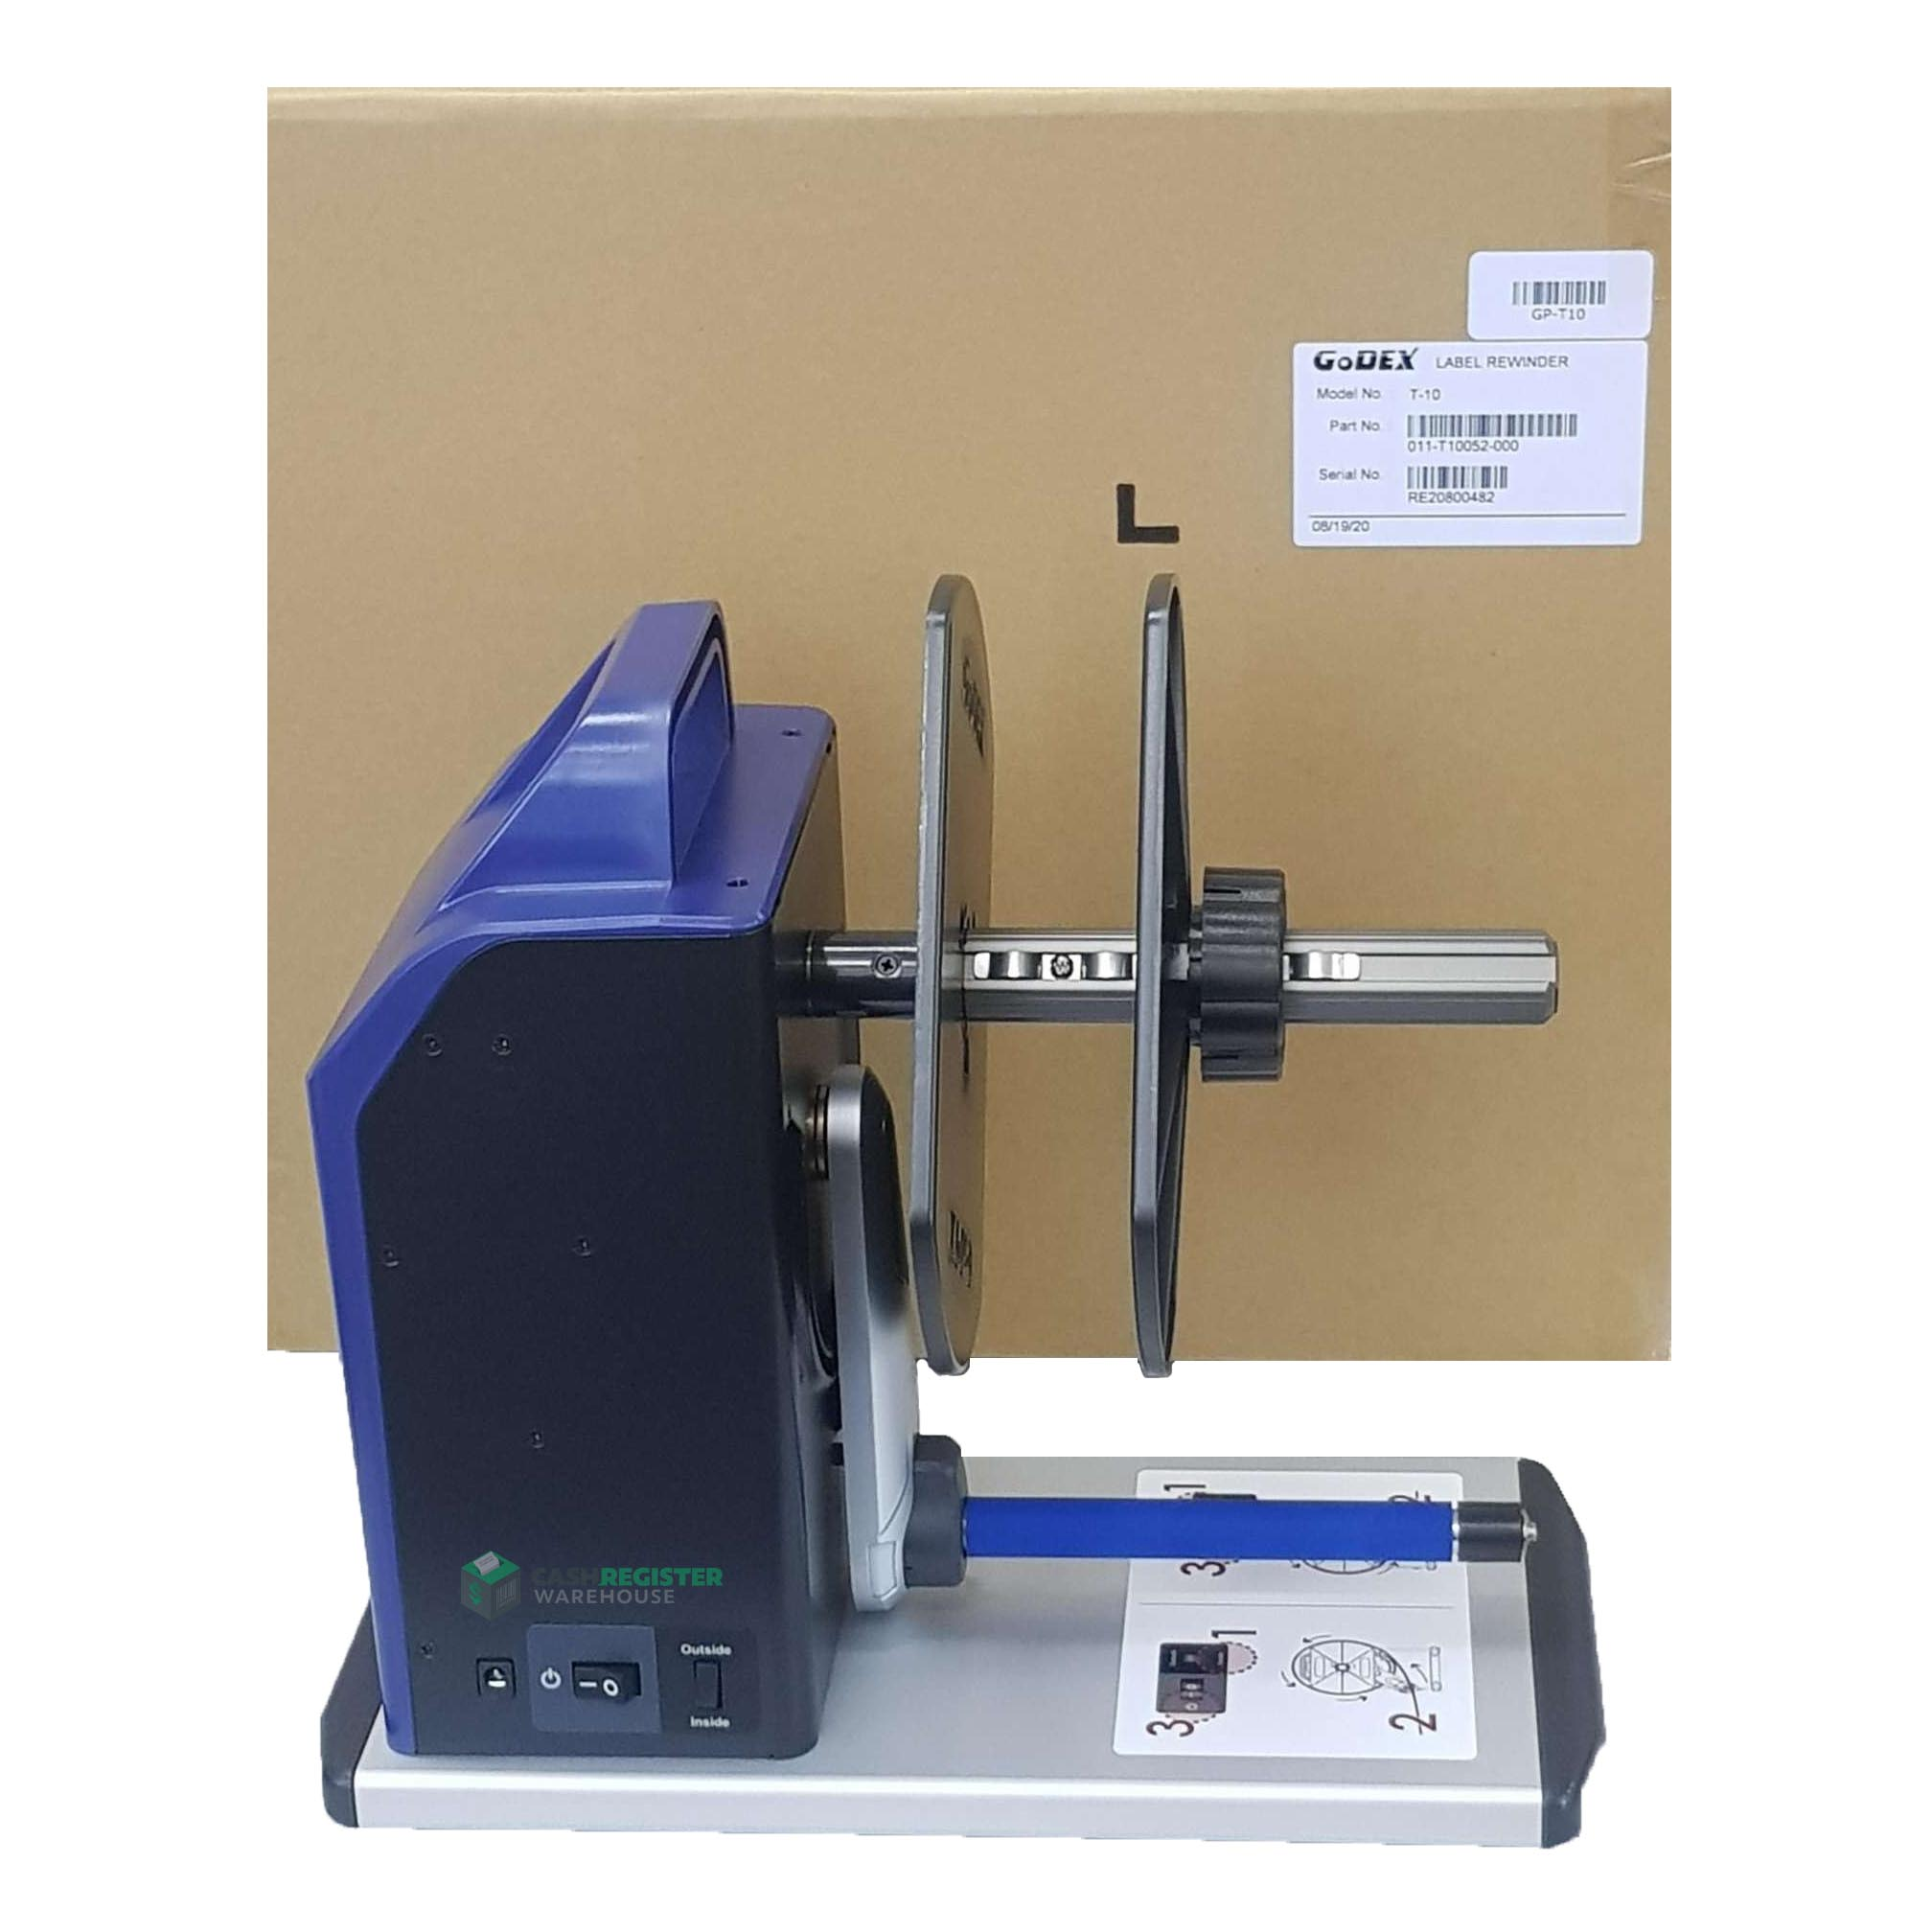 View Godex T10 Label Rewinder